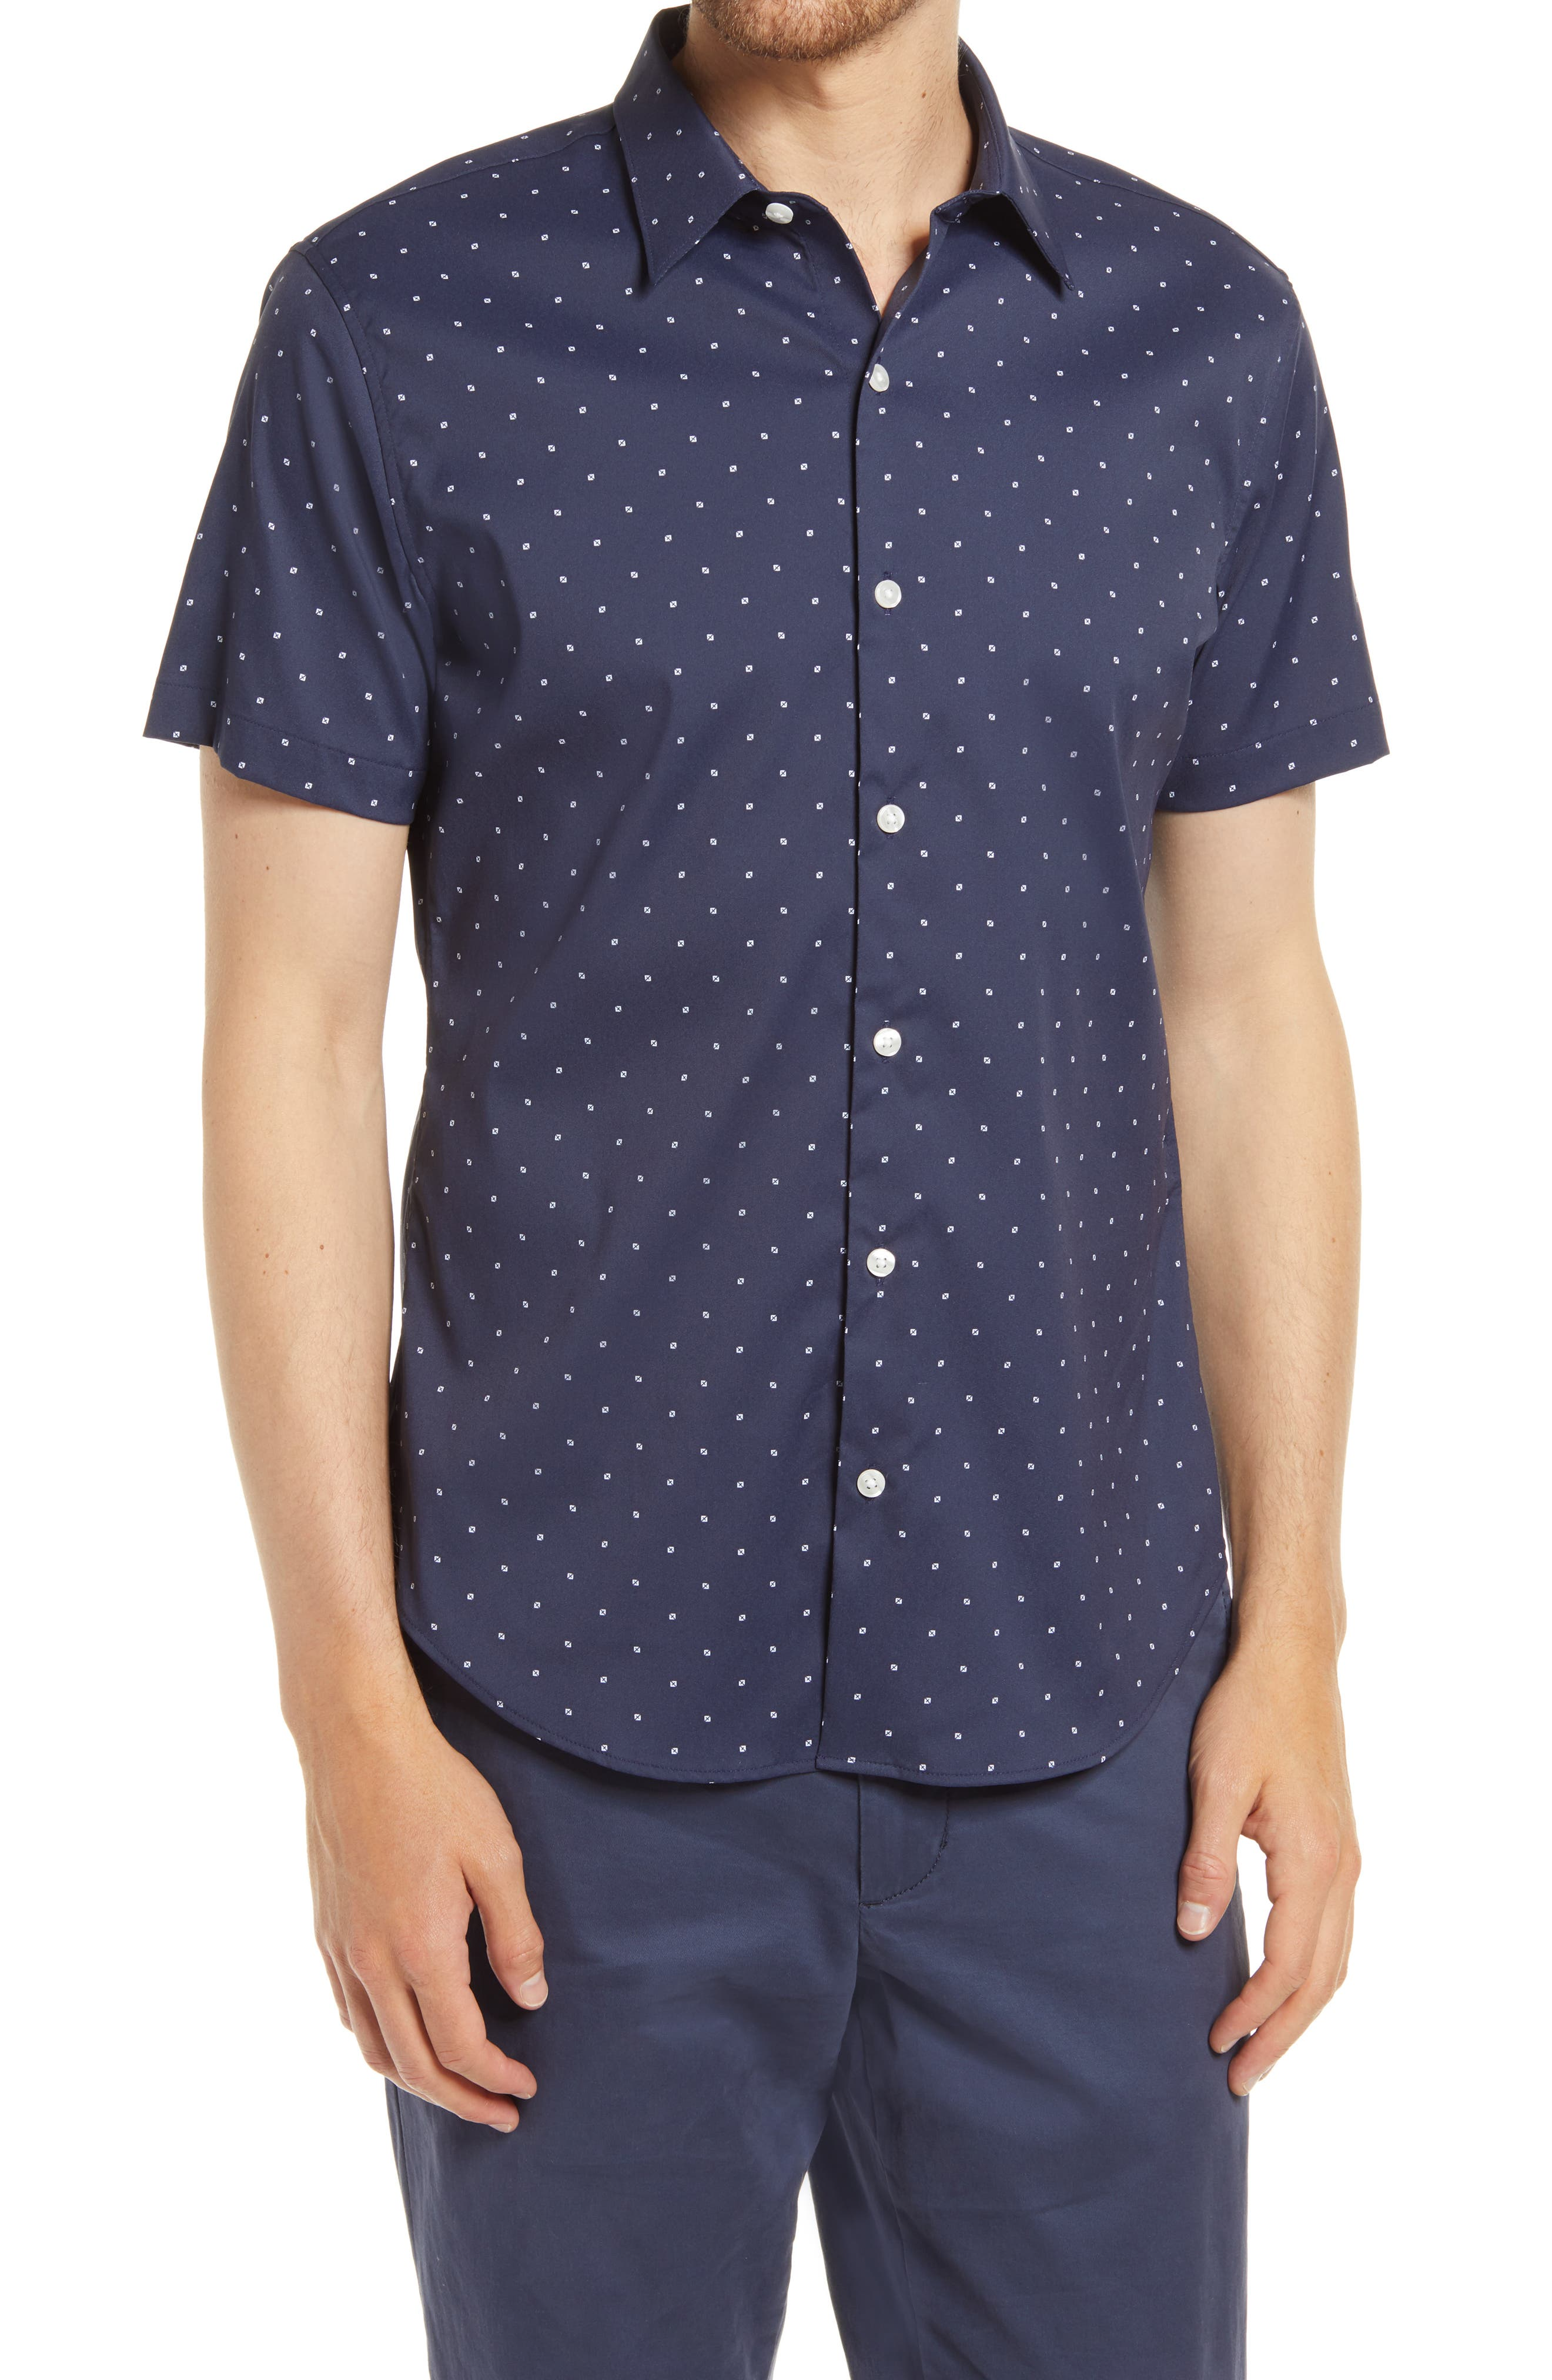 A smart, stretchy blend means flexible comfort in a modern shirt patterned in a crisp dot grid. Style Name: Bonobos Tech Slim Fit Dot Short Sleeve Button-Up Shirt. Style Number: 6038034. Available in stores.